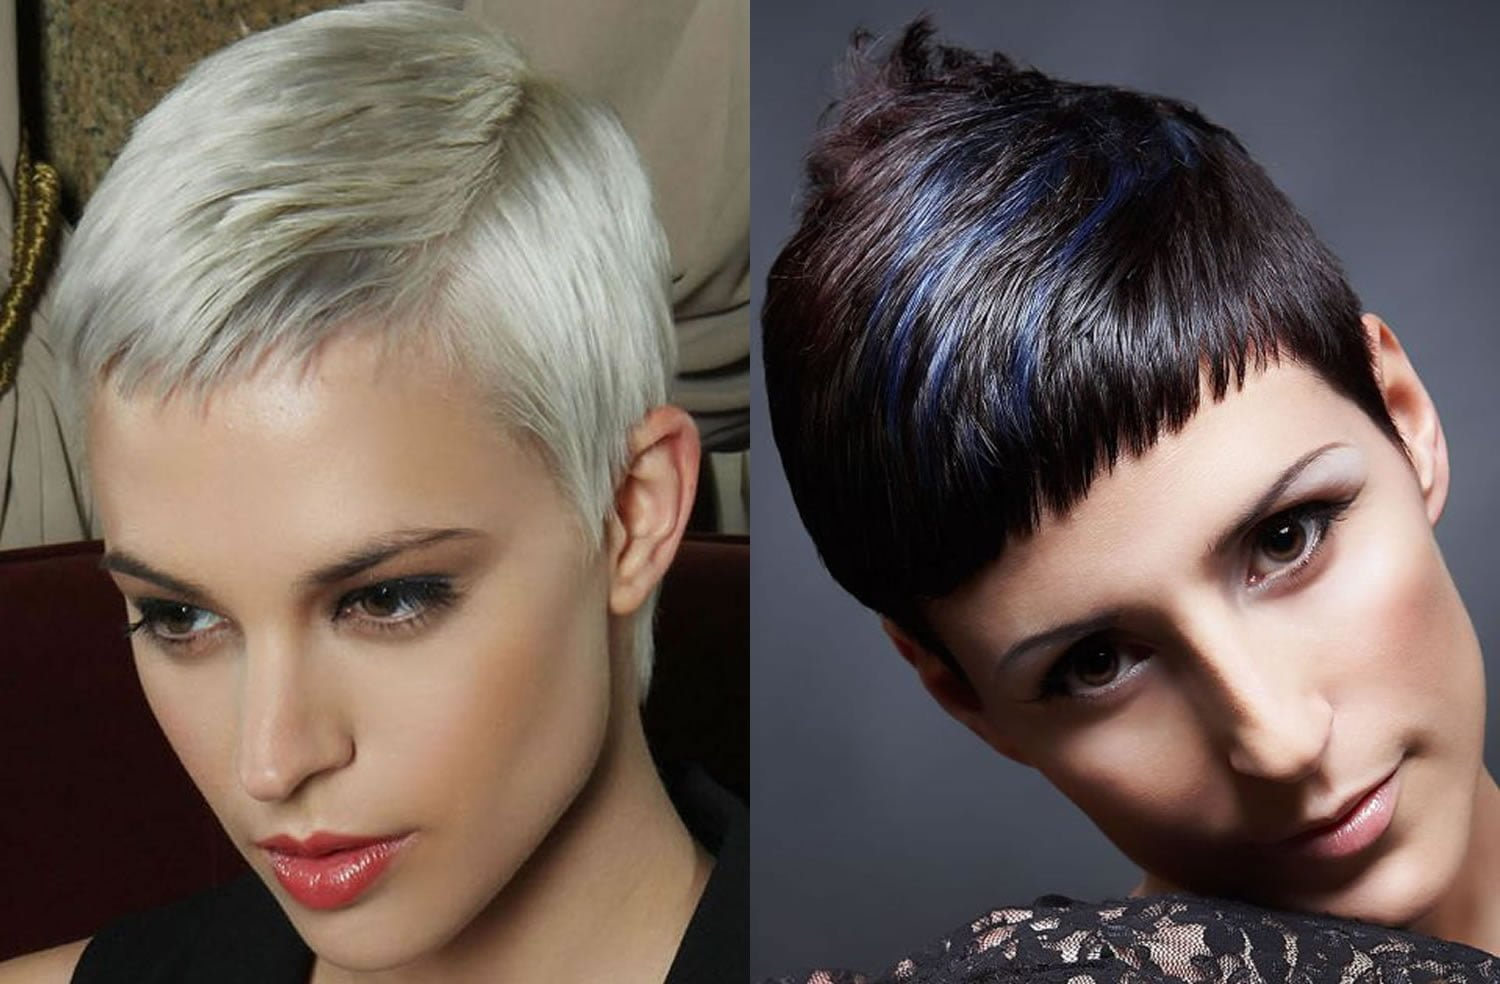 Hairstyles 2019: Side Swept Short Pixie Cut Hairstyles 2019 Trends